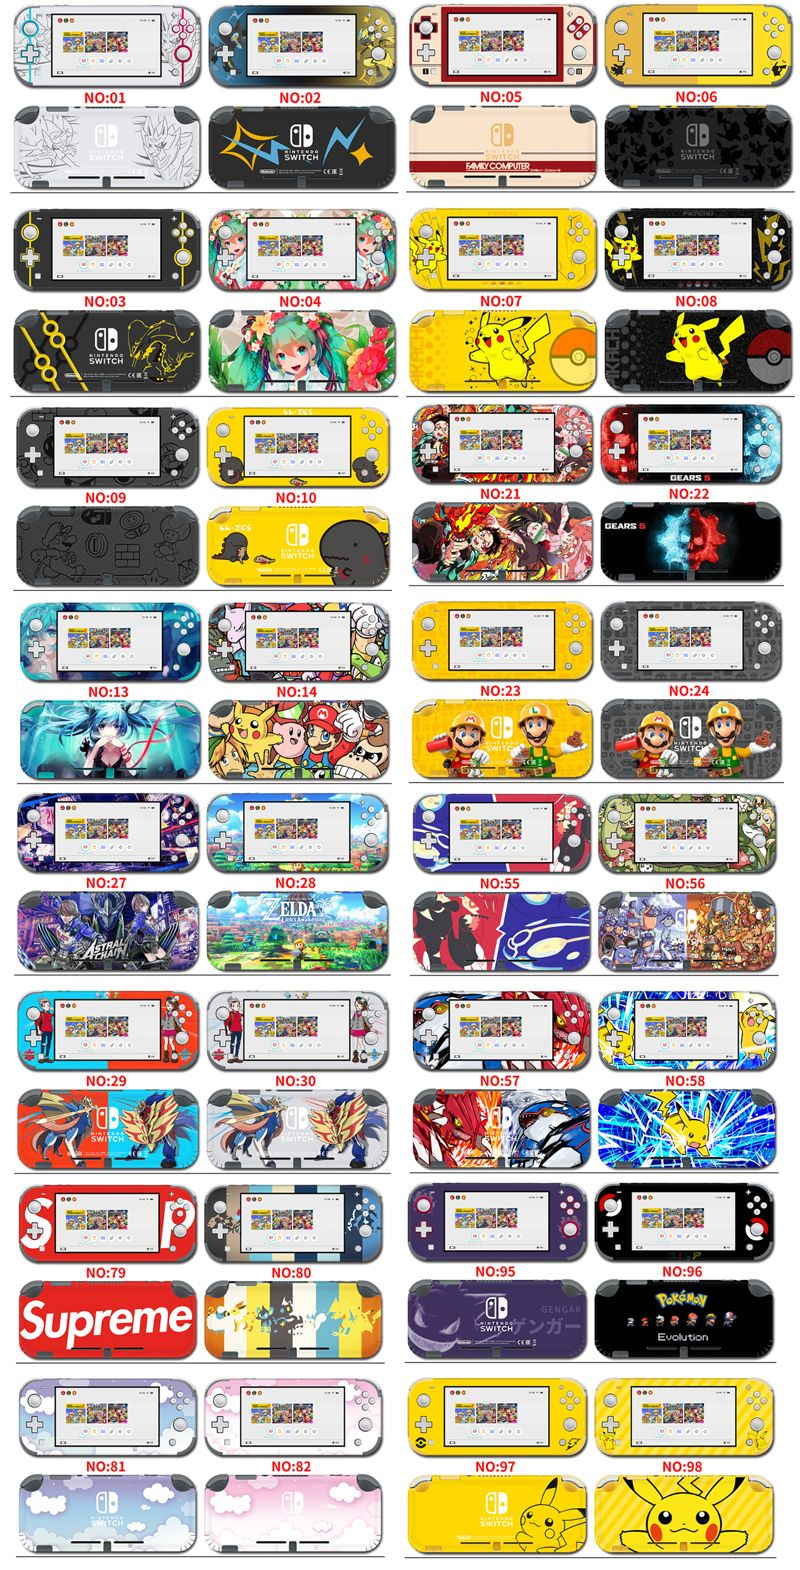 Pin by VirtualPhotography on nintendo collection